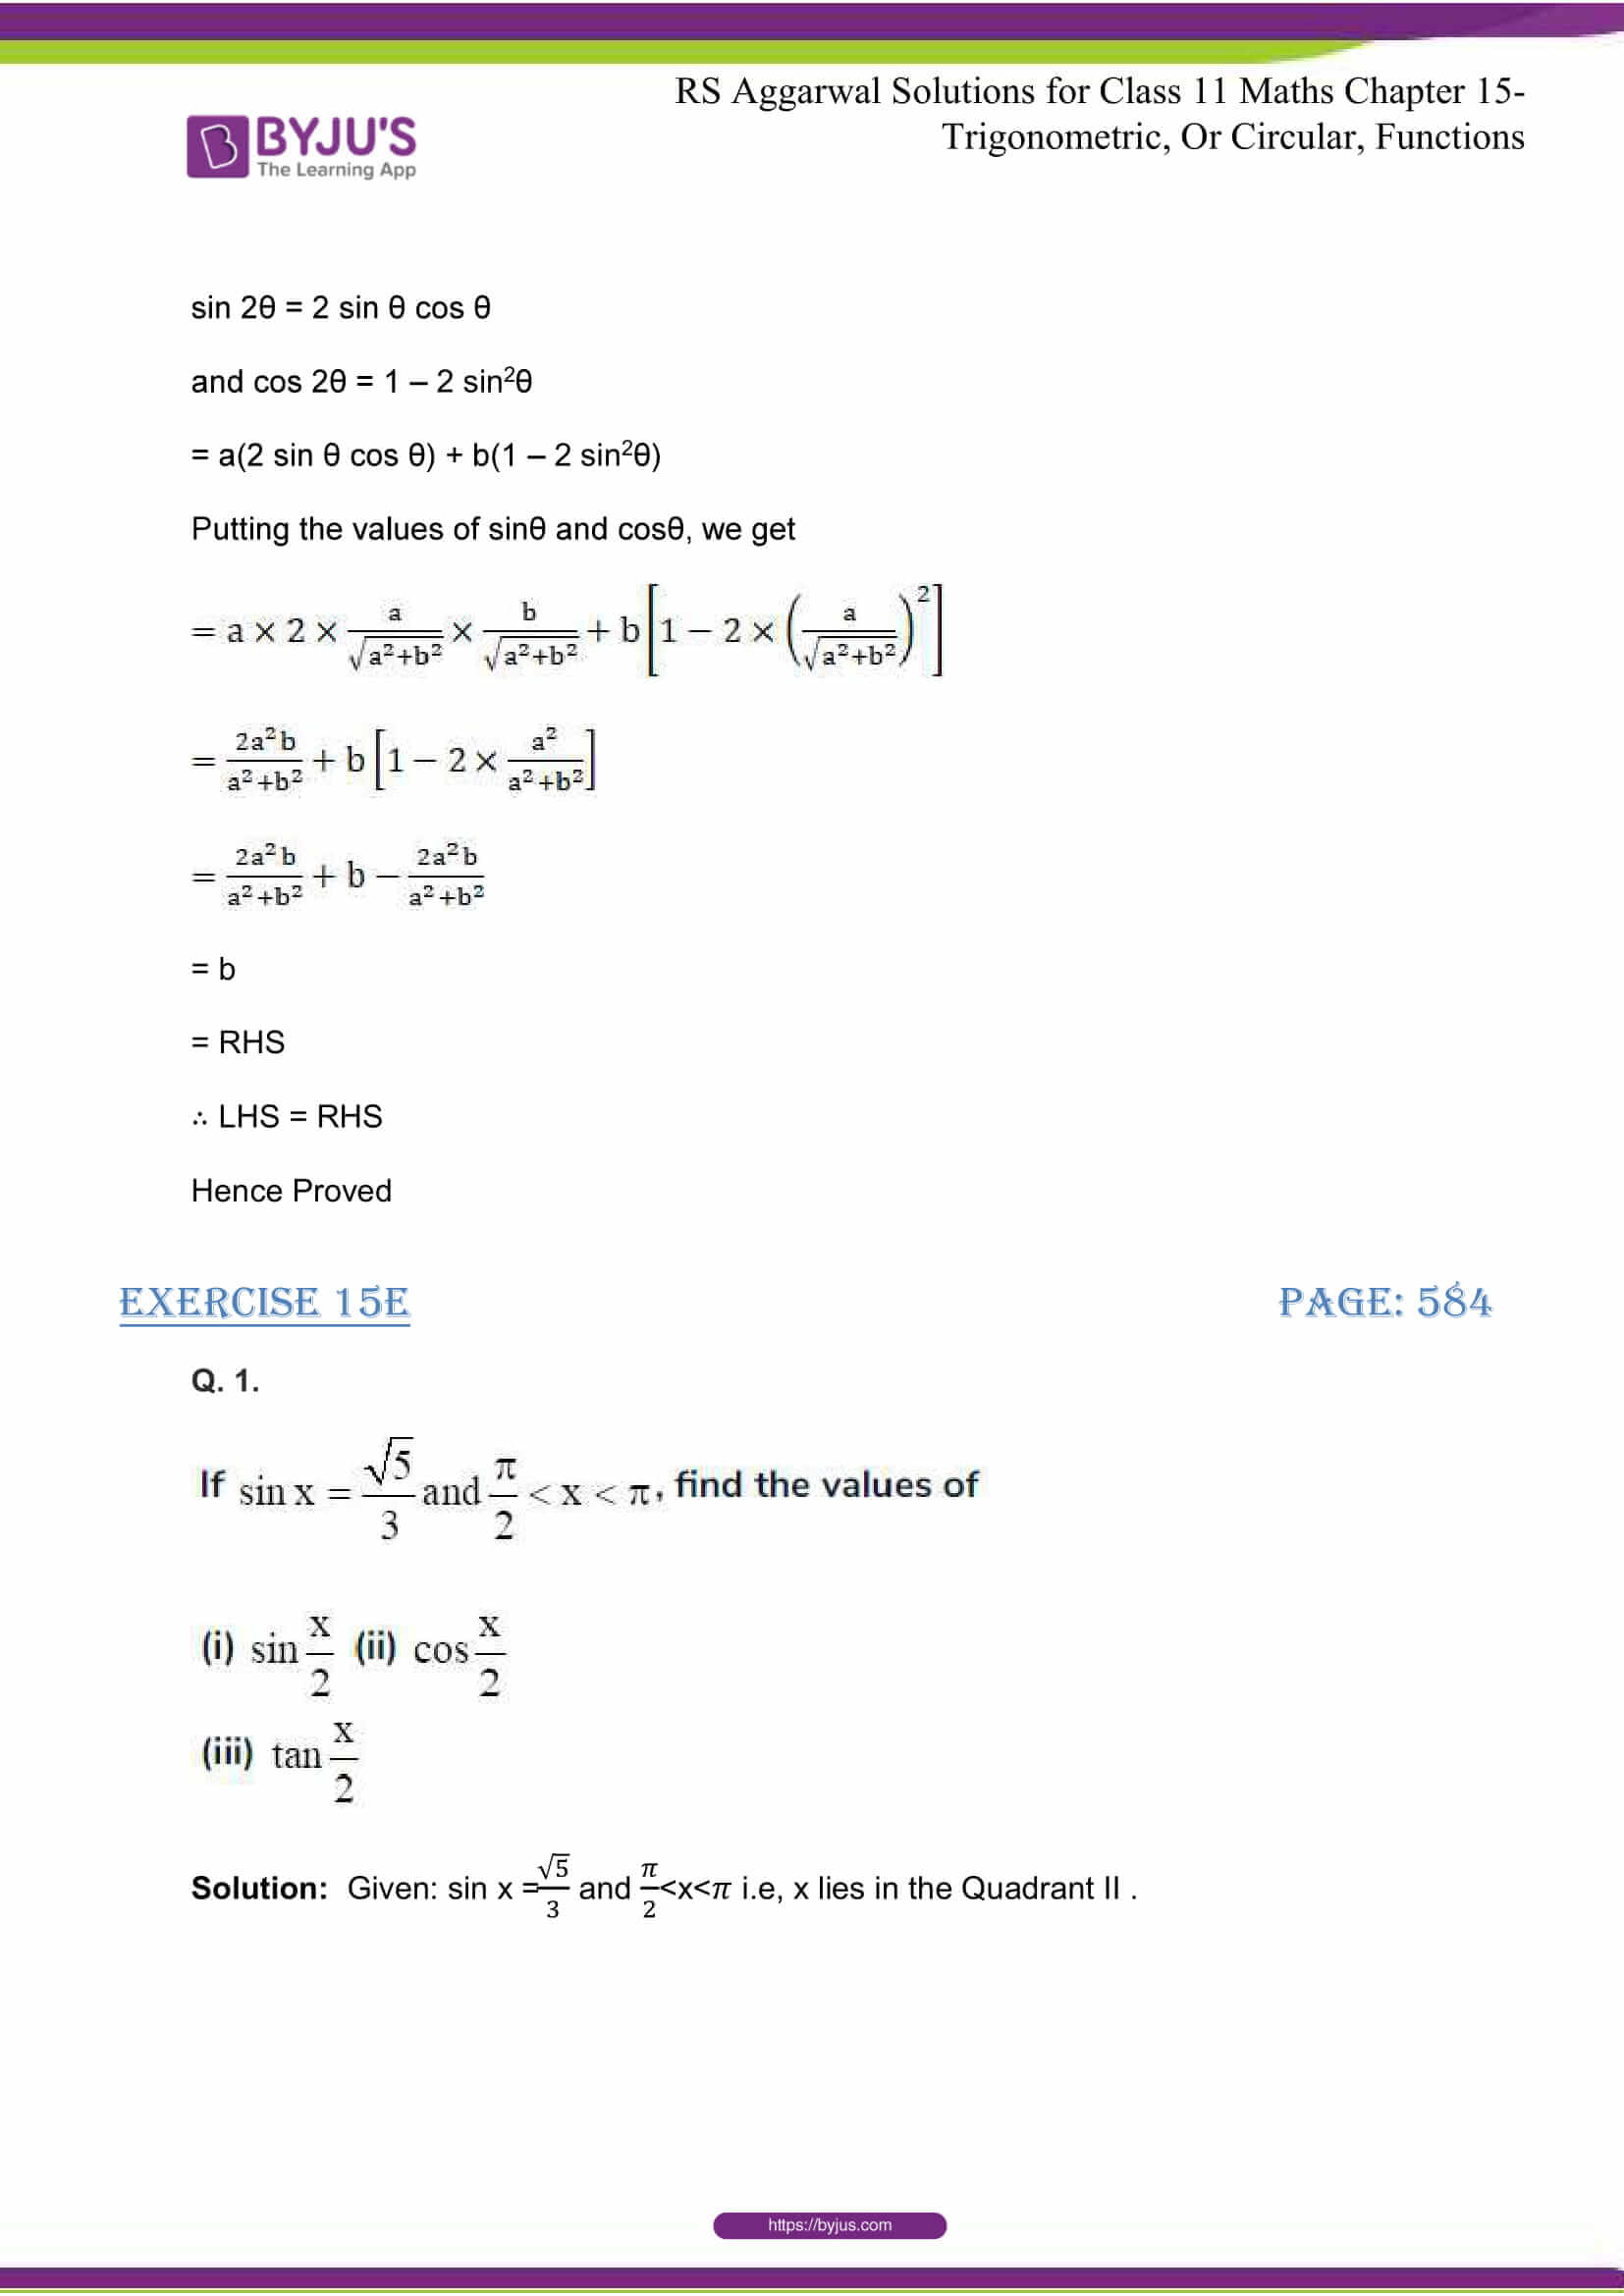 rsaggarwal solutions class 11 maths chapter 15 113